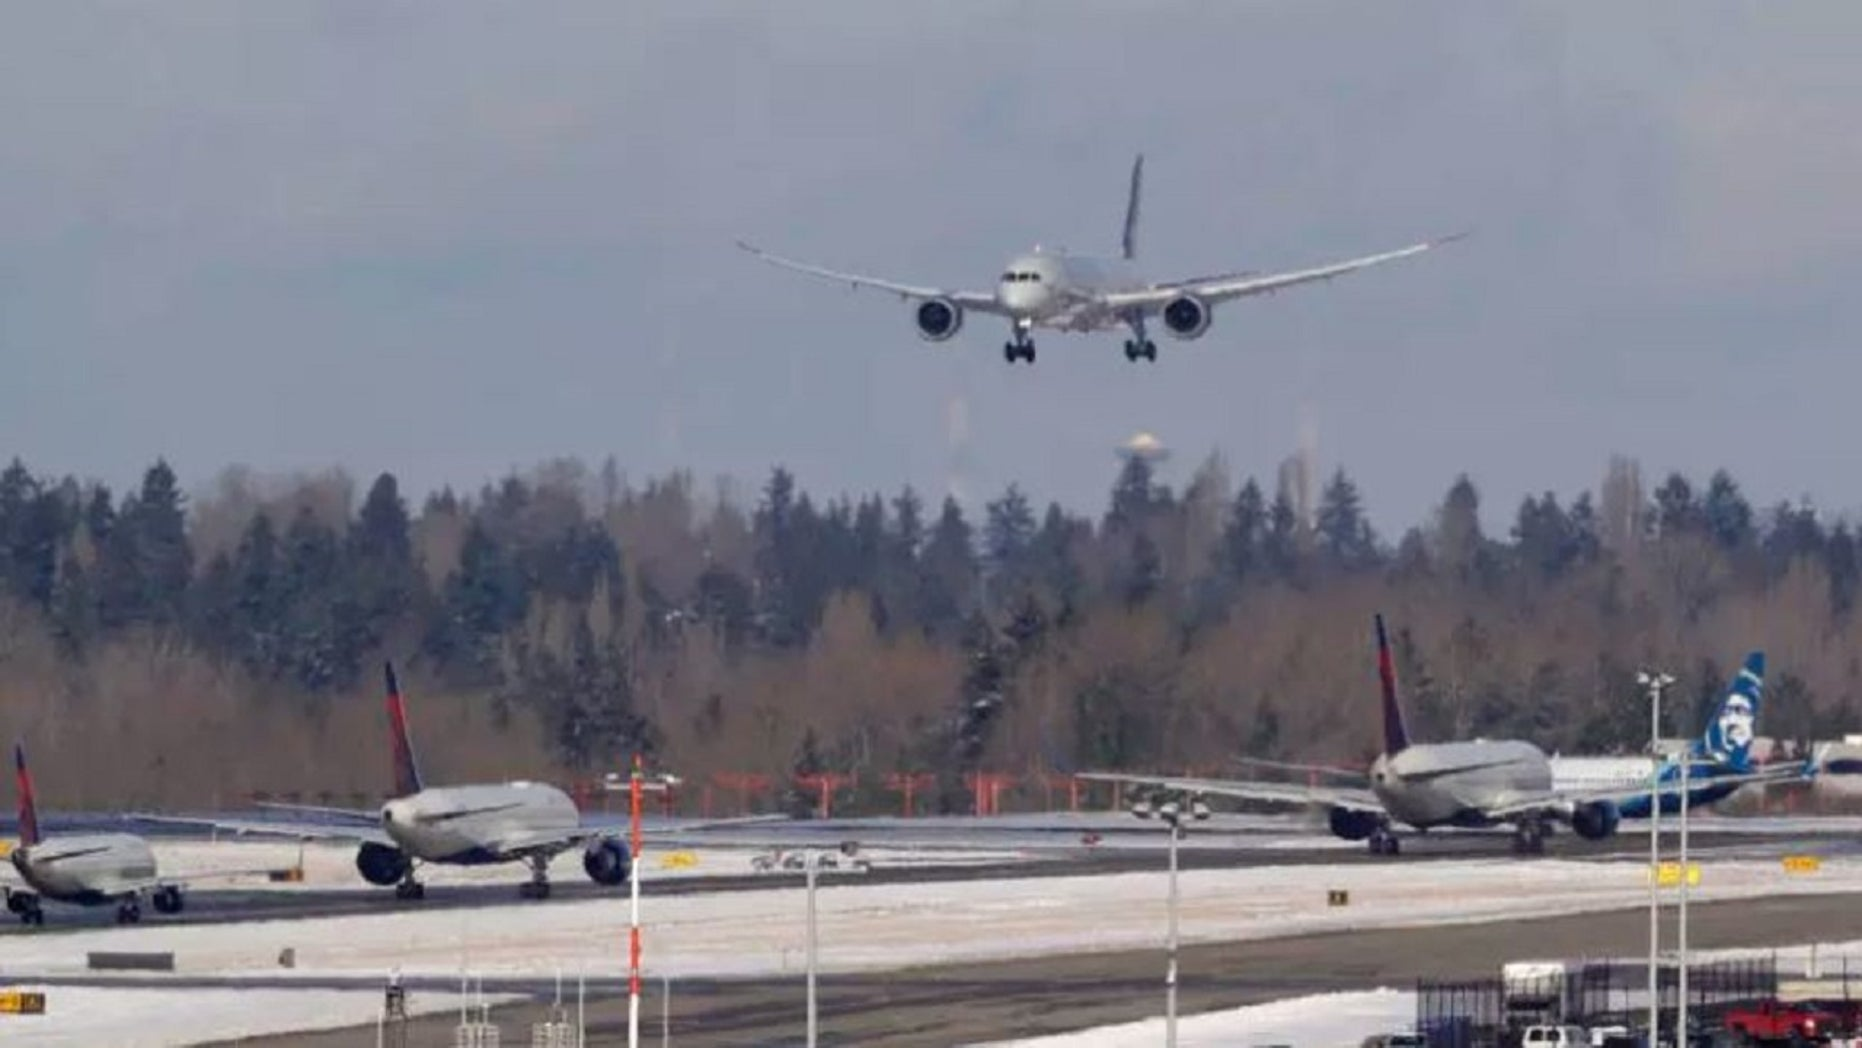 Jet stream helps flight reach 801 miles per hour